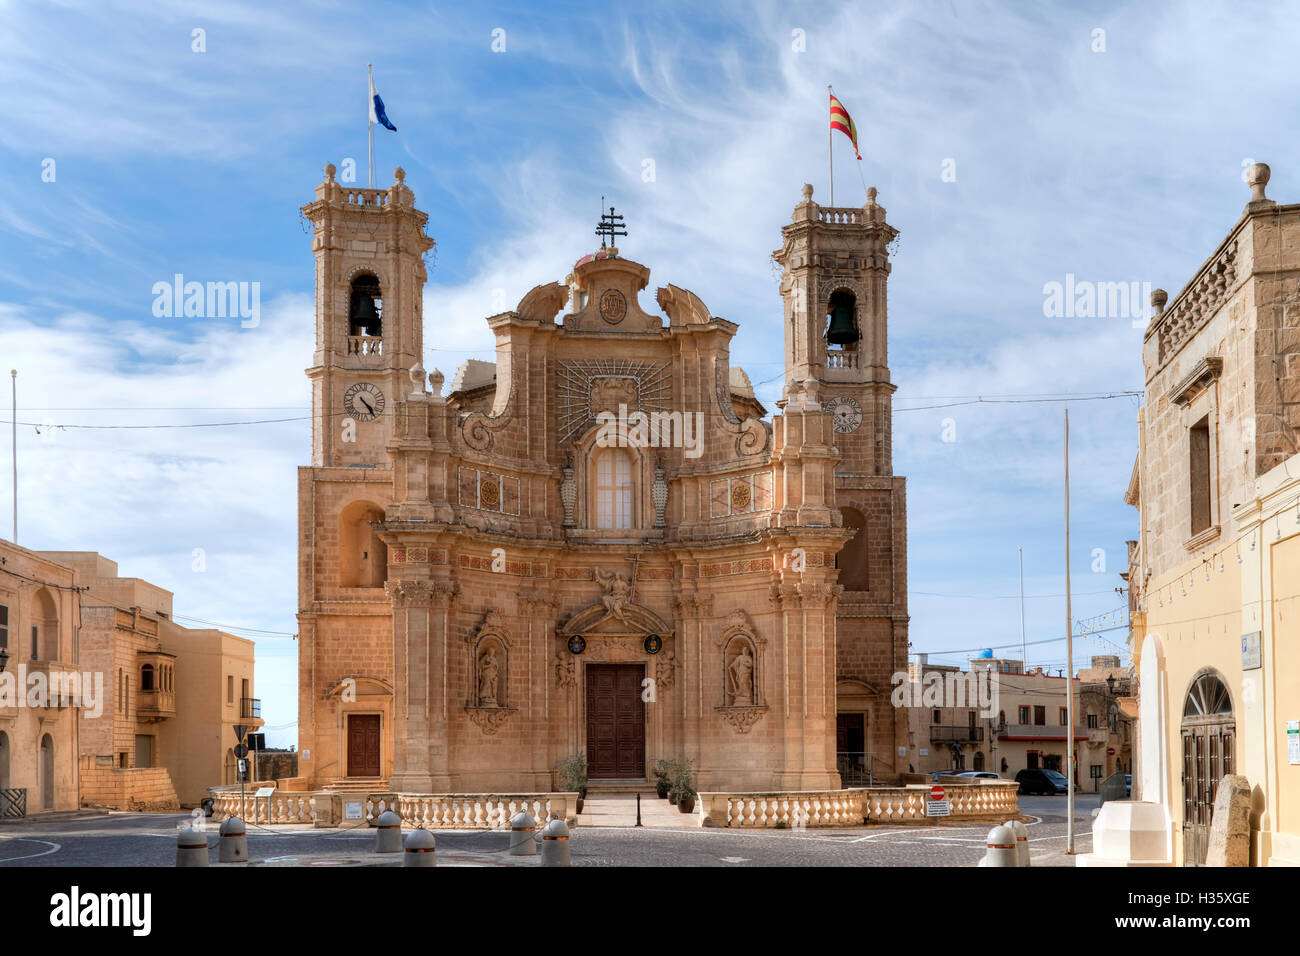 Parish Church in Gharb, Gozo, Malta - Stock Image